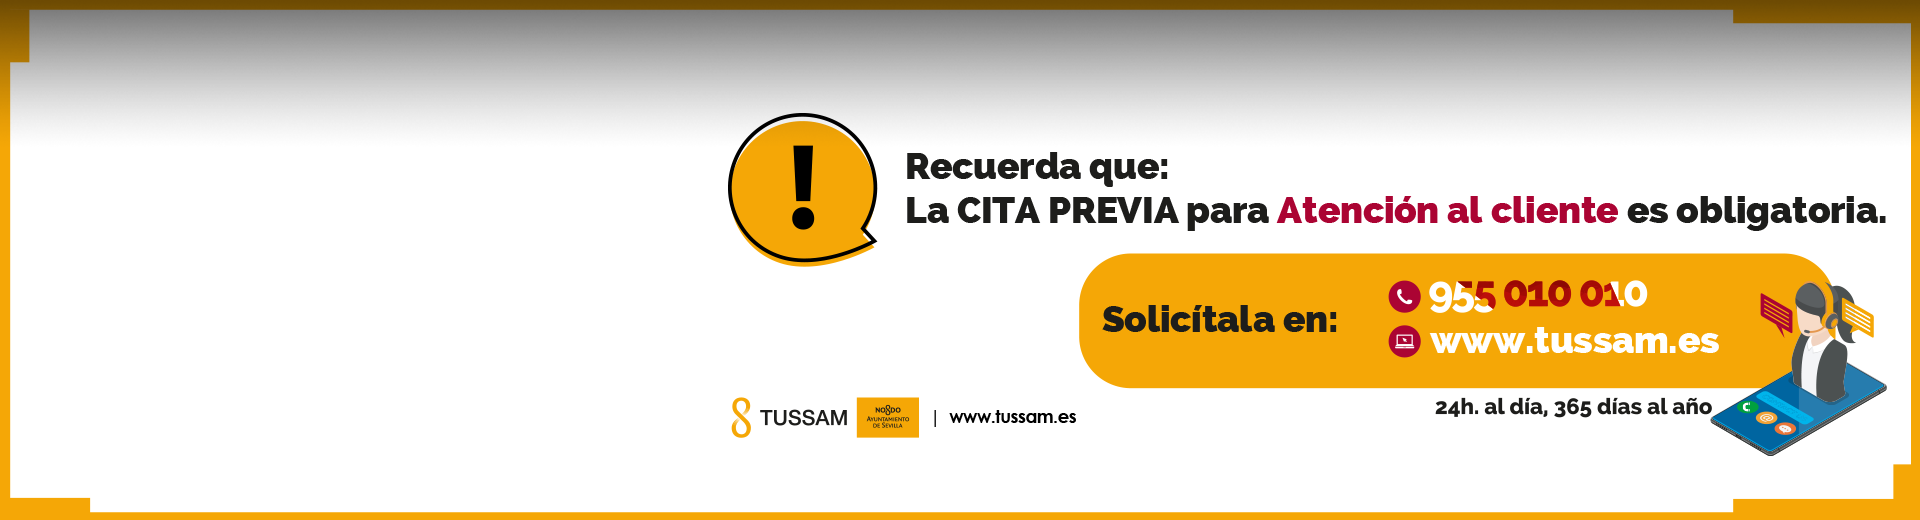 https://www.tussam.es/sites/default/files/revslider/image/Slider_1920_Alto520_1.png